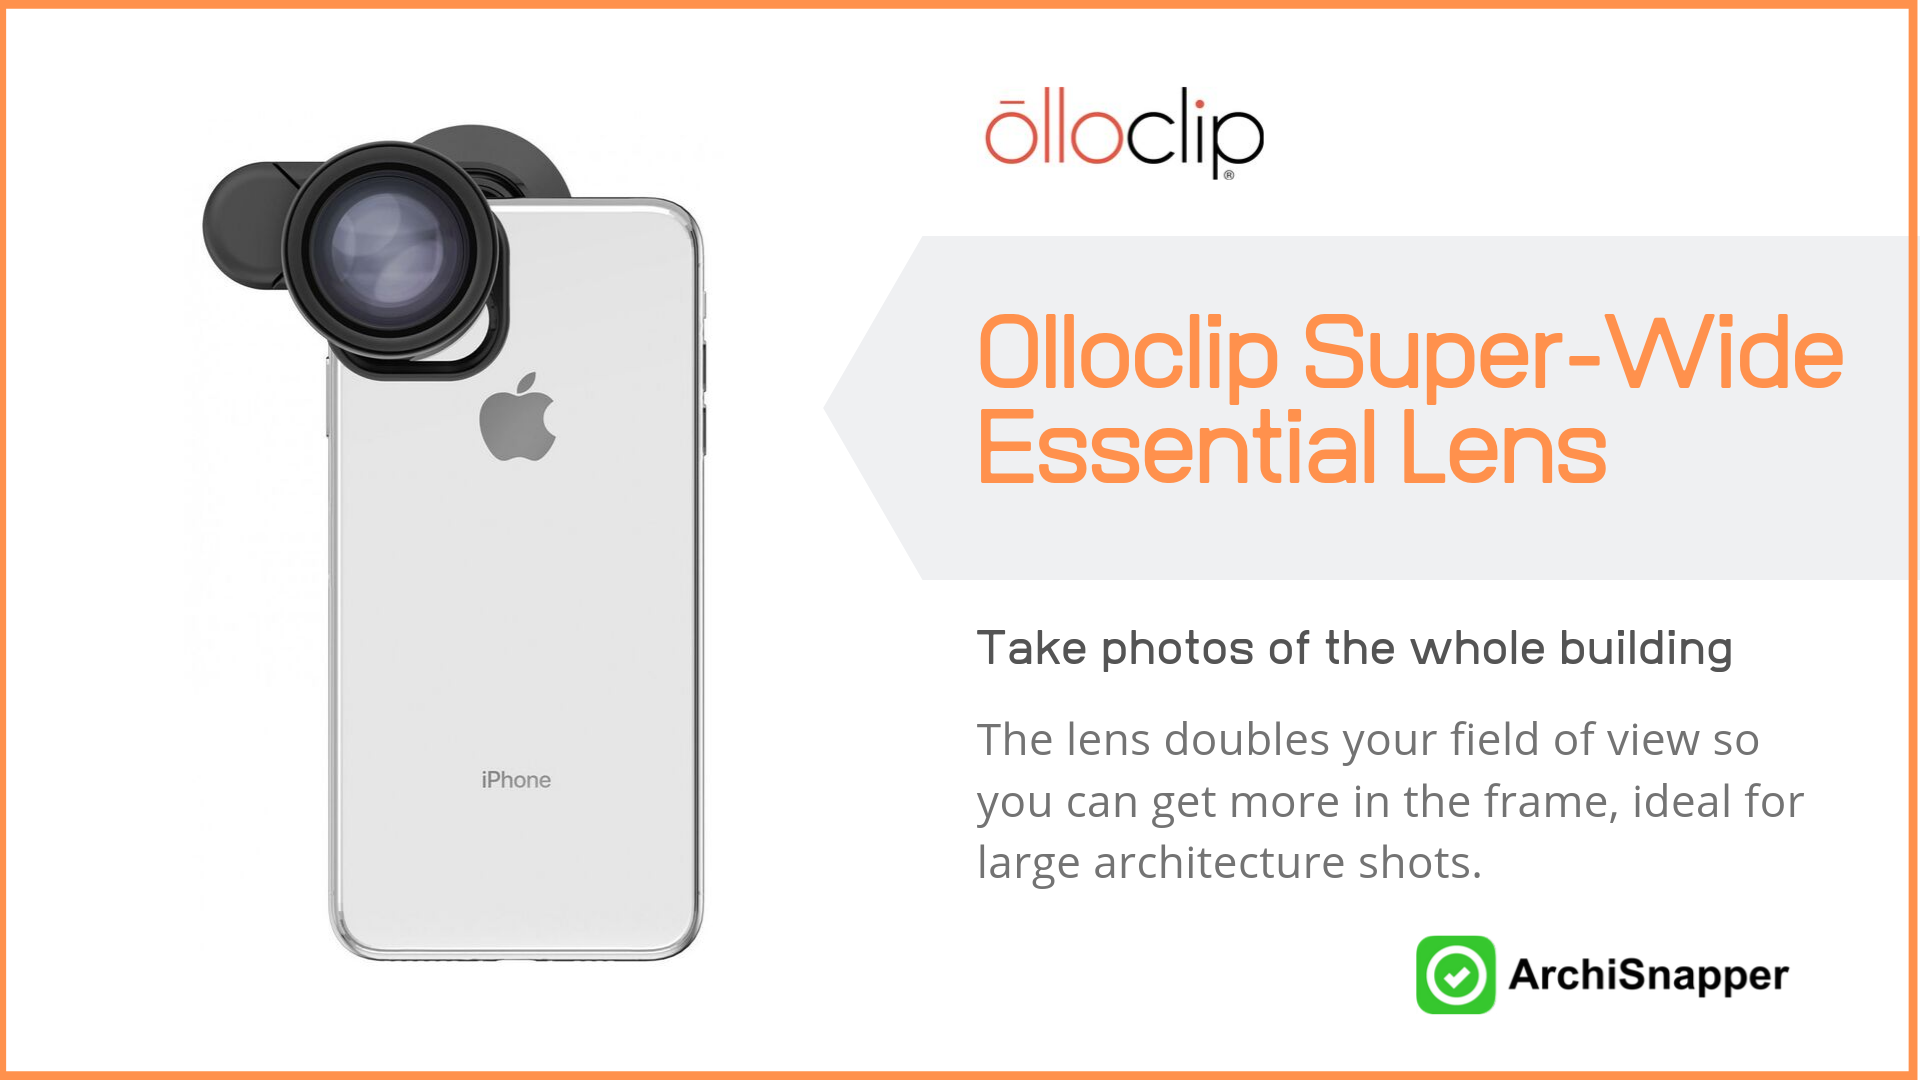 Olloclip Super-Wide Essential Lens